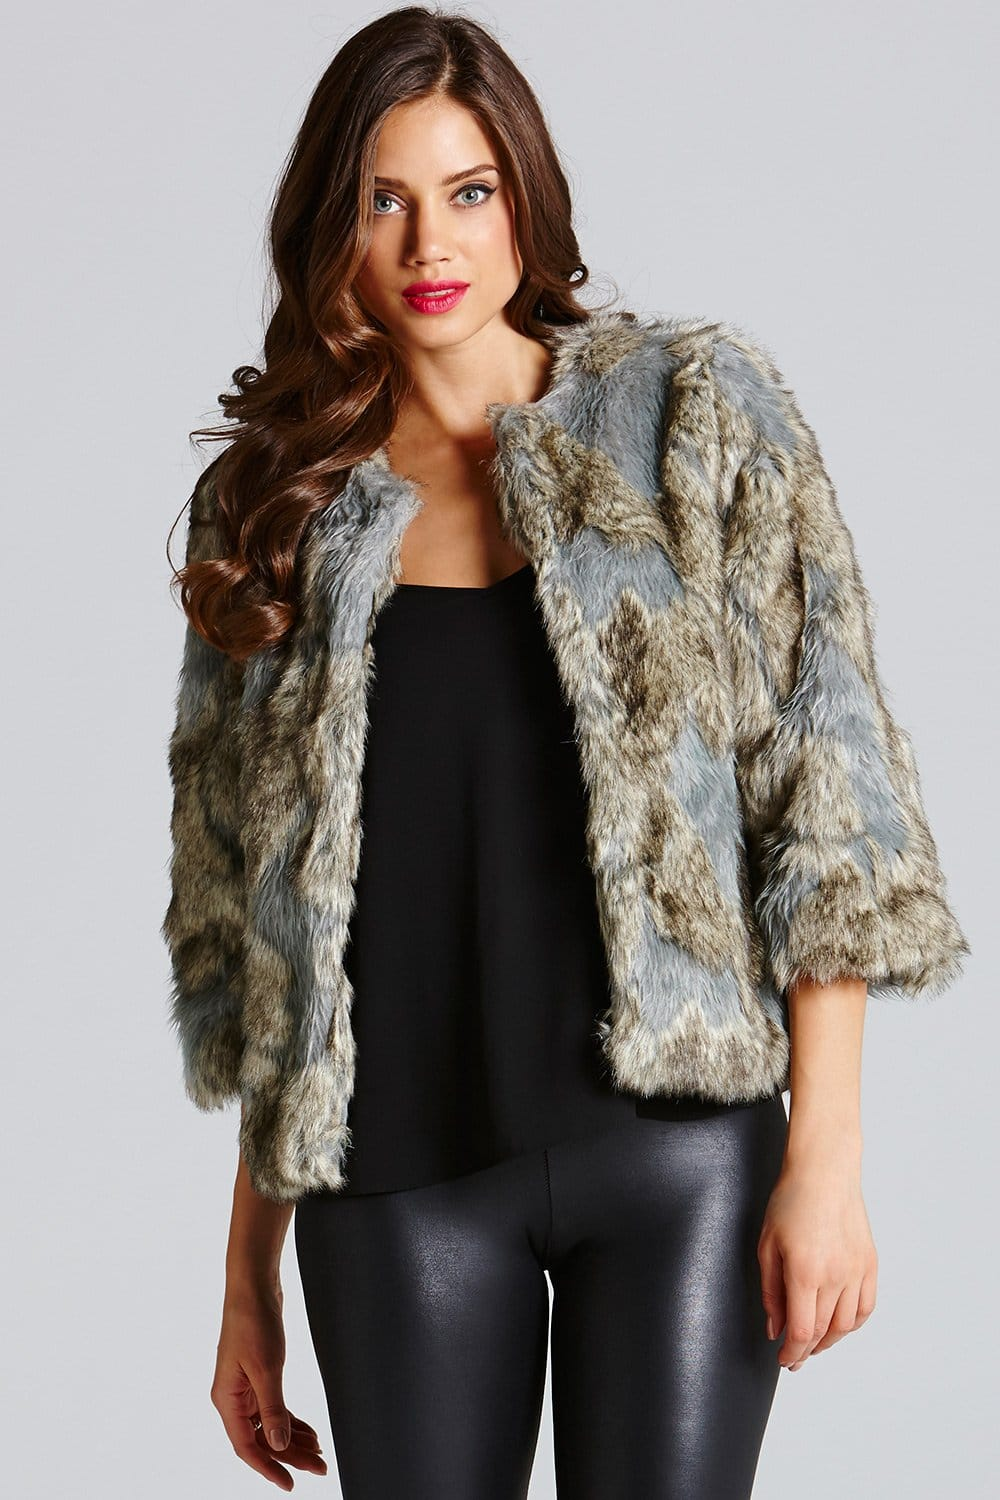 Little Mistress Grey Cropped Faux Fur Jacket - Little Mistress